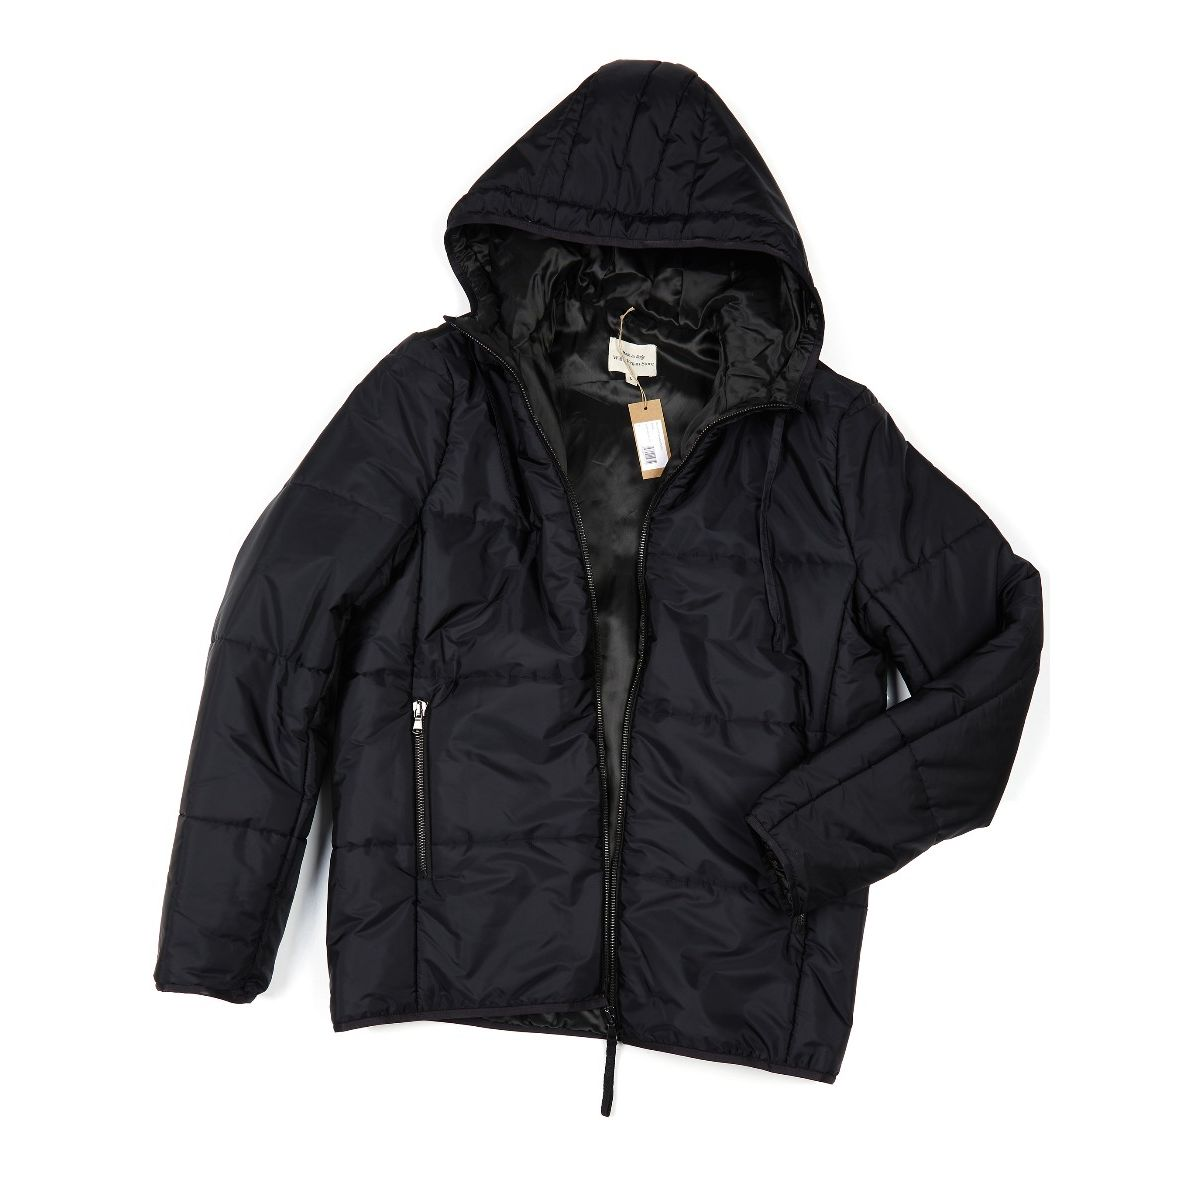 WOMEN'S RECYCLED PUFFER